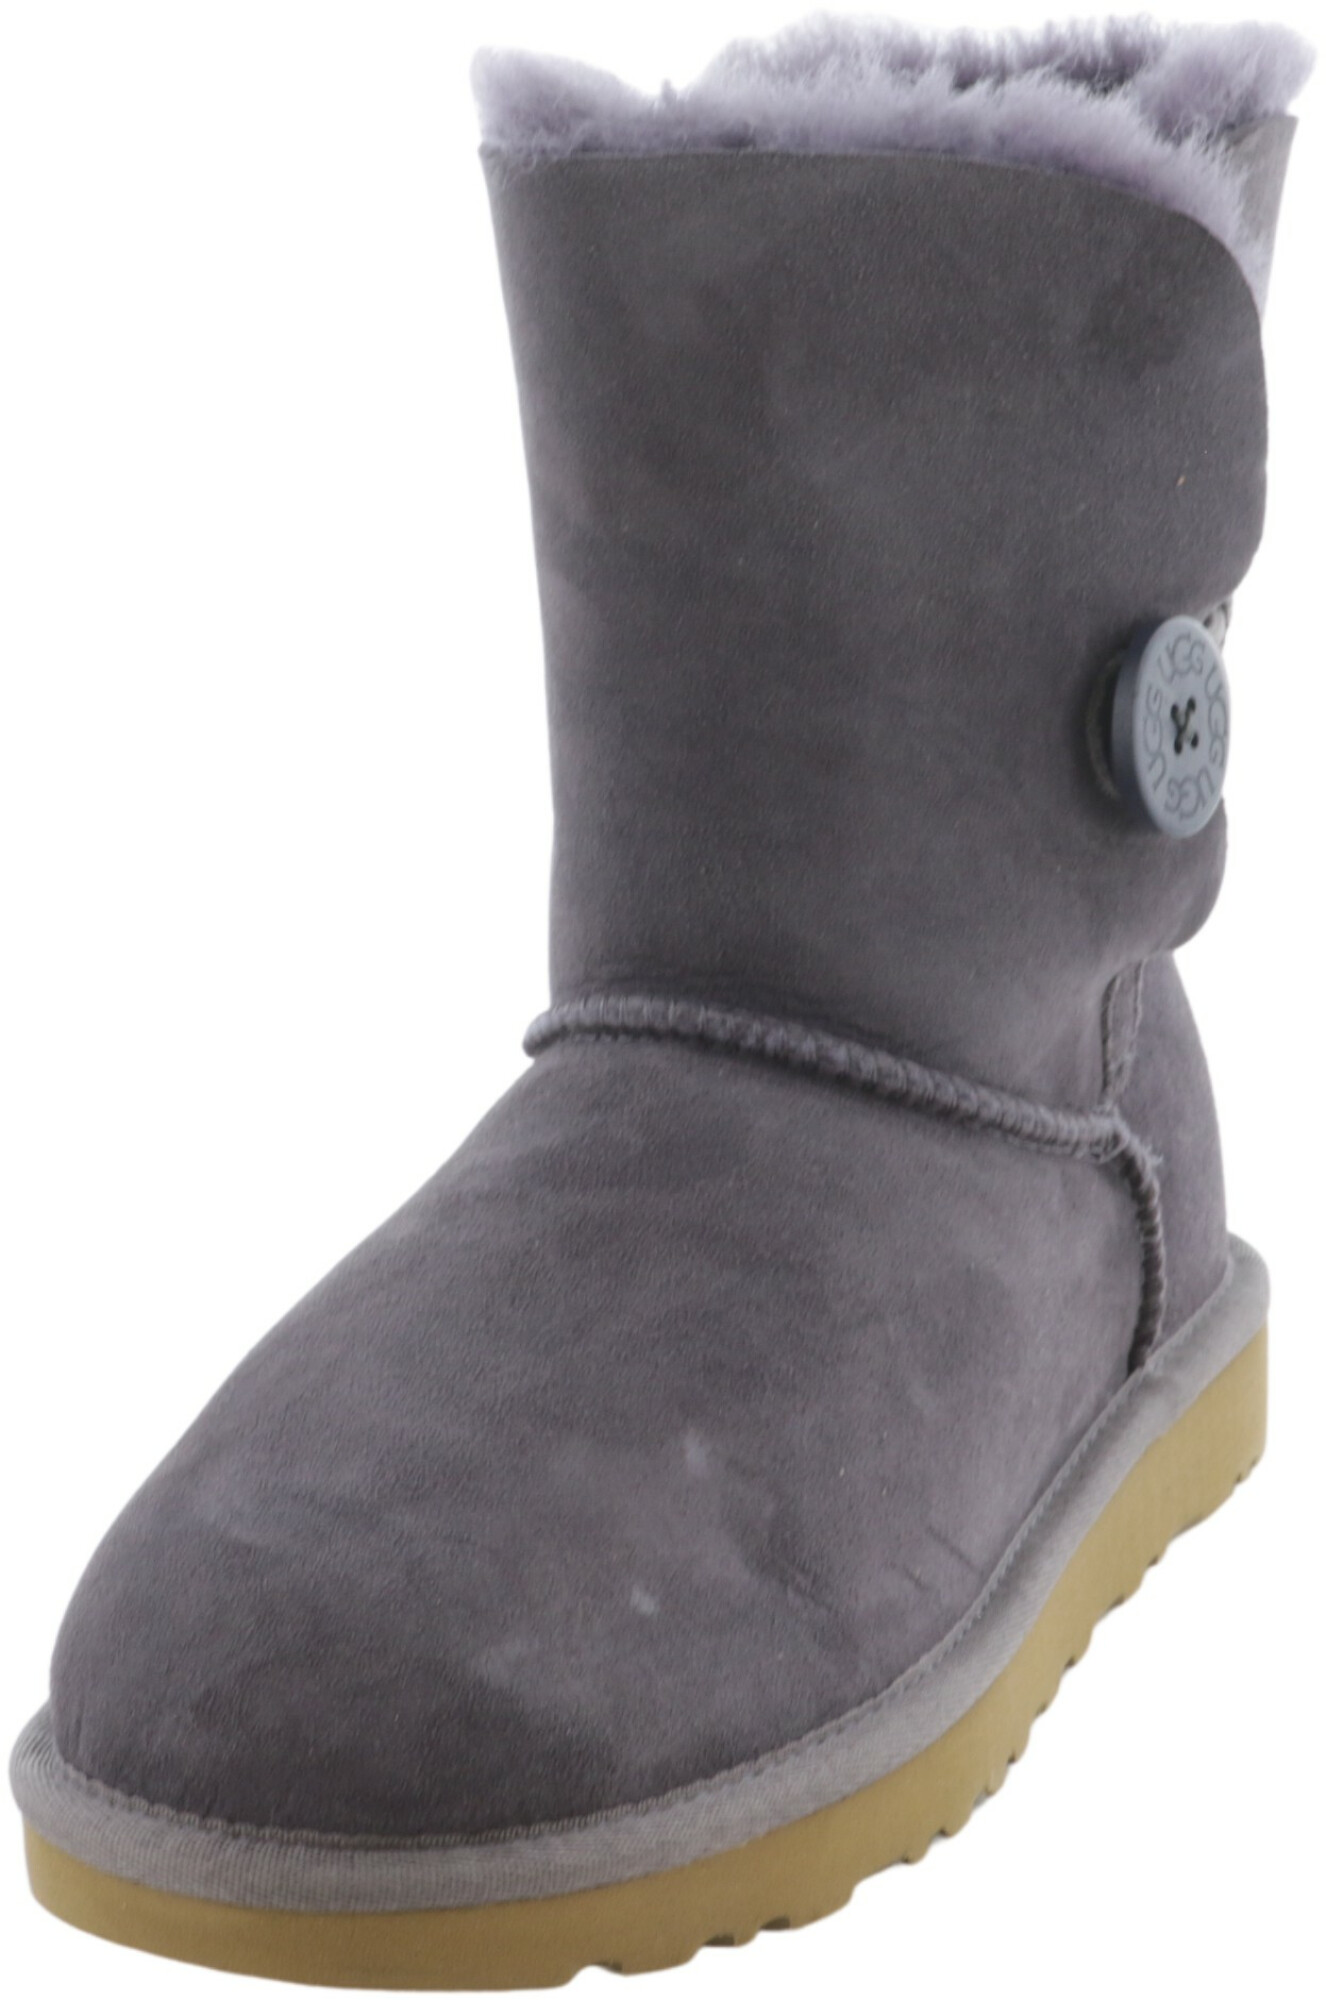 Ugg Women's Bailey Button II Nightfall High-Top Sheepskin Boot - 6M